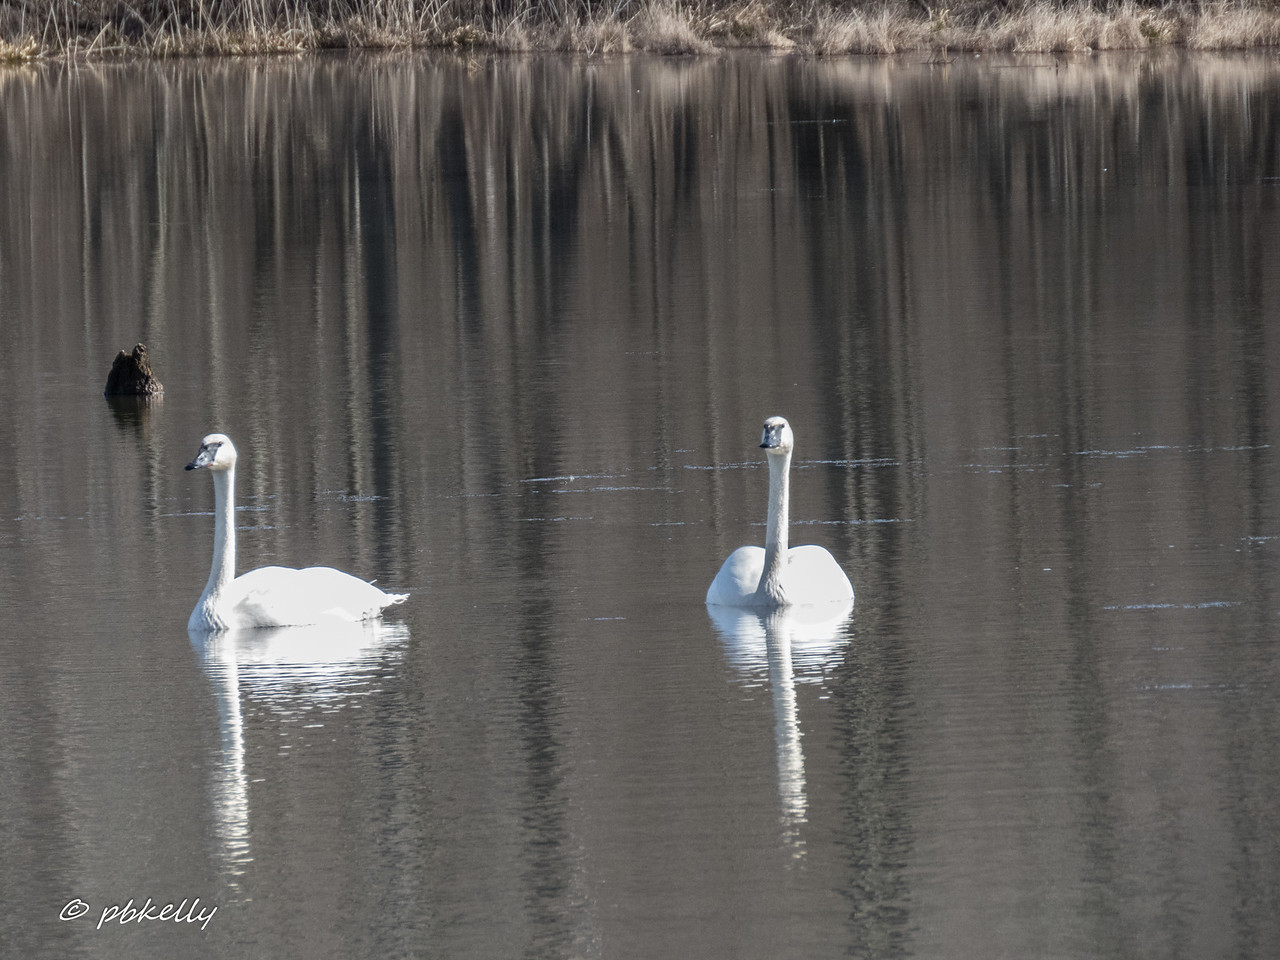 2-20-17.  Caley Reservation.  A pair of Trumpeter swans in the back pond.<br /> My project for the day was figuring out the difference between Trumpeter and Tundra Swans.  These are Trumpeter.